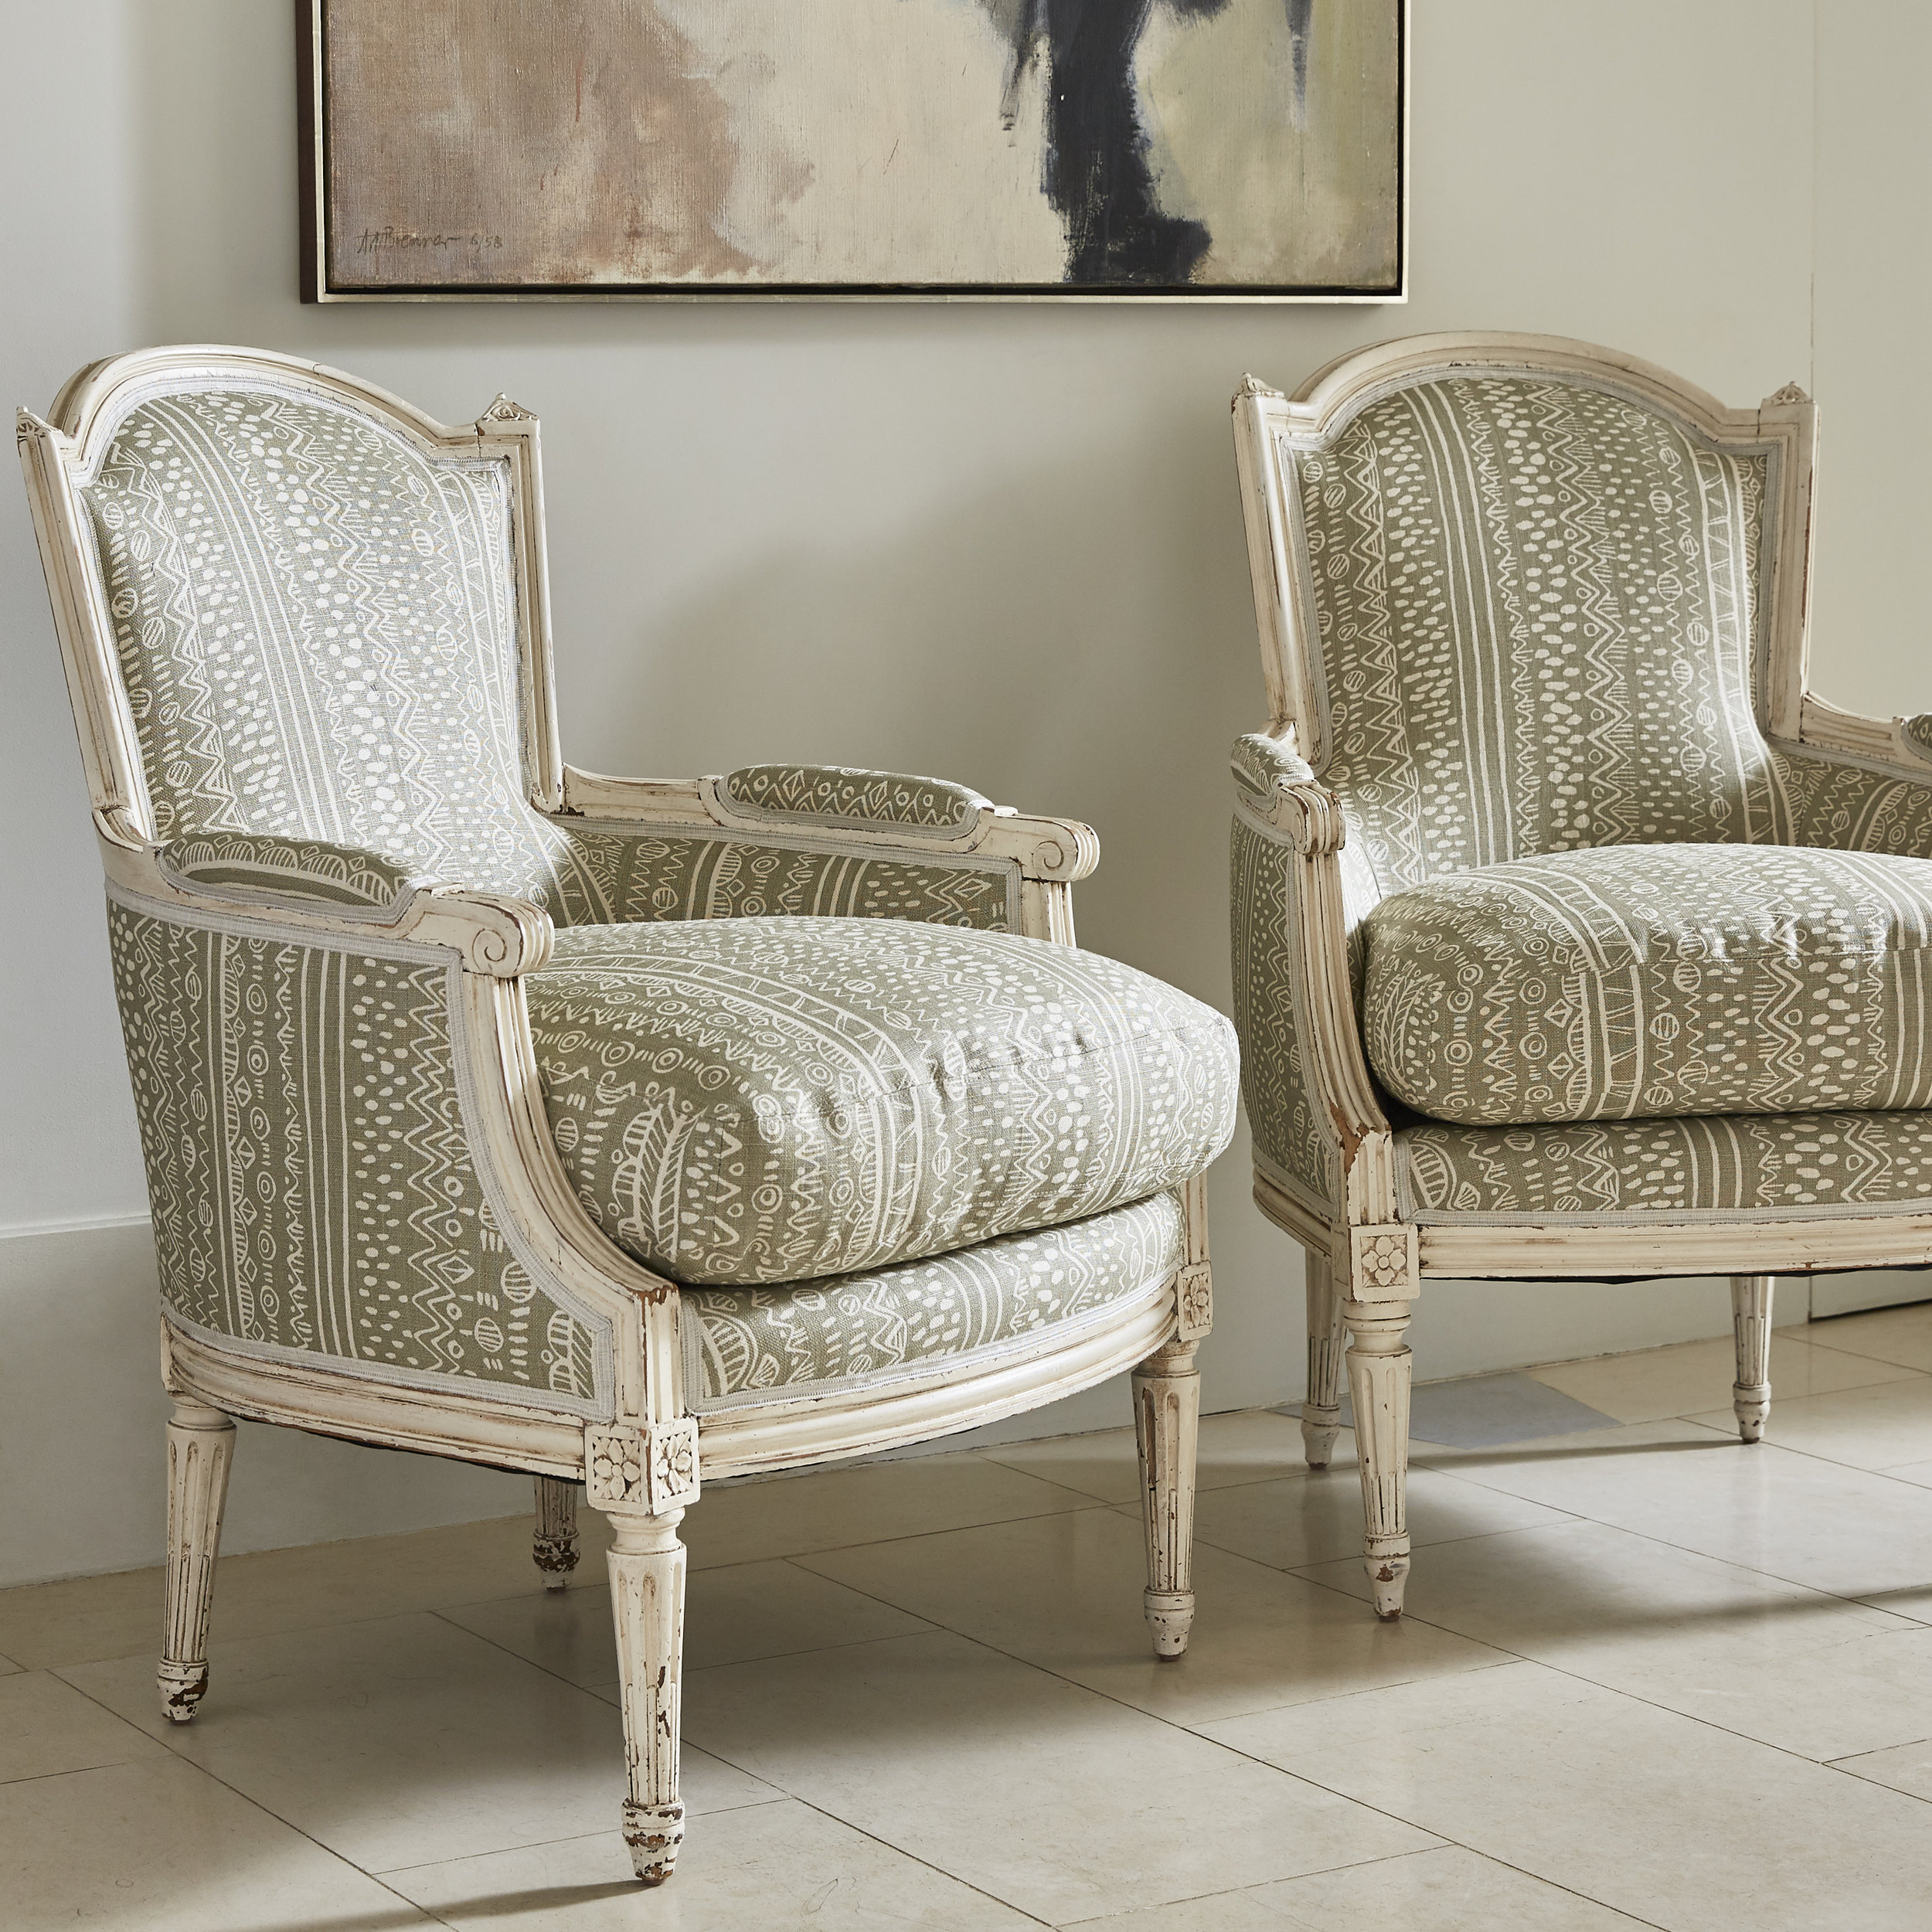 Blithfield_chester_taupe_chairs.jpg